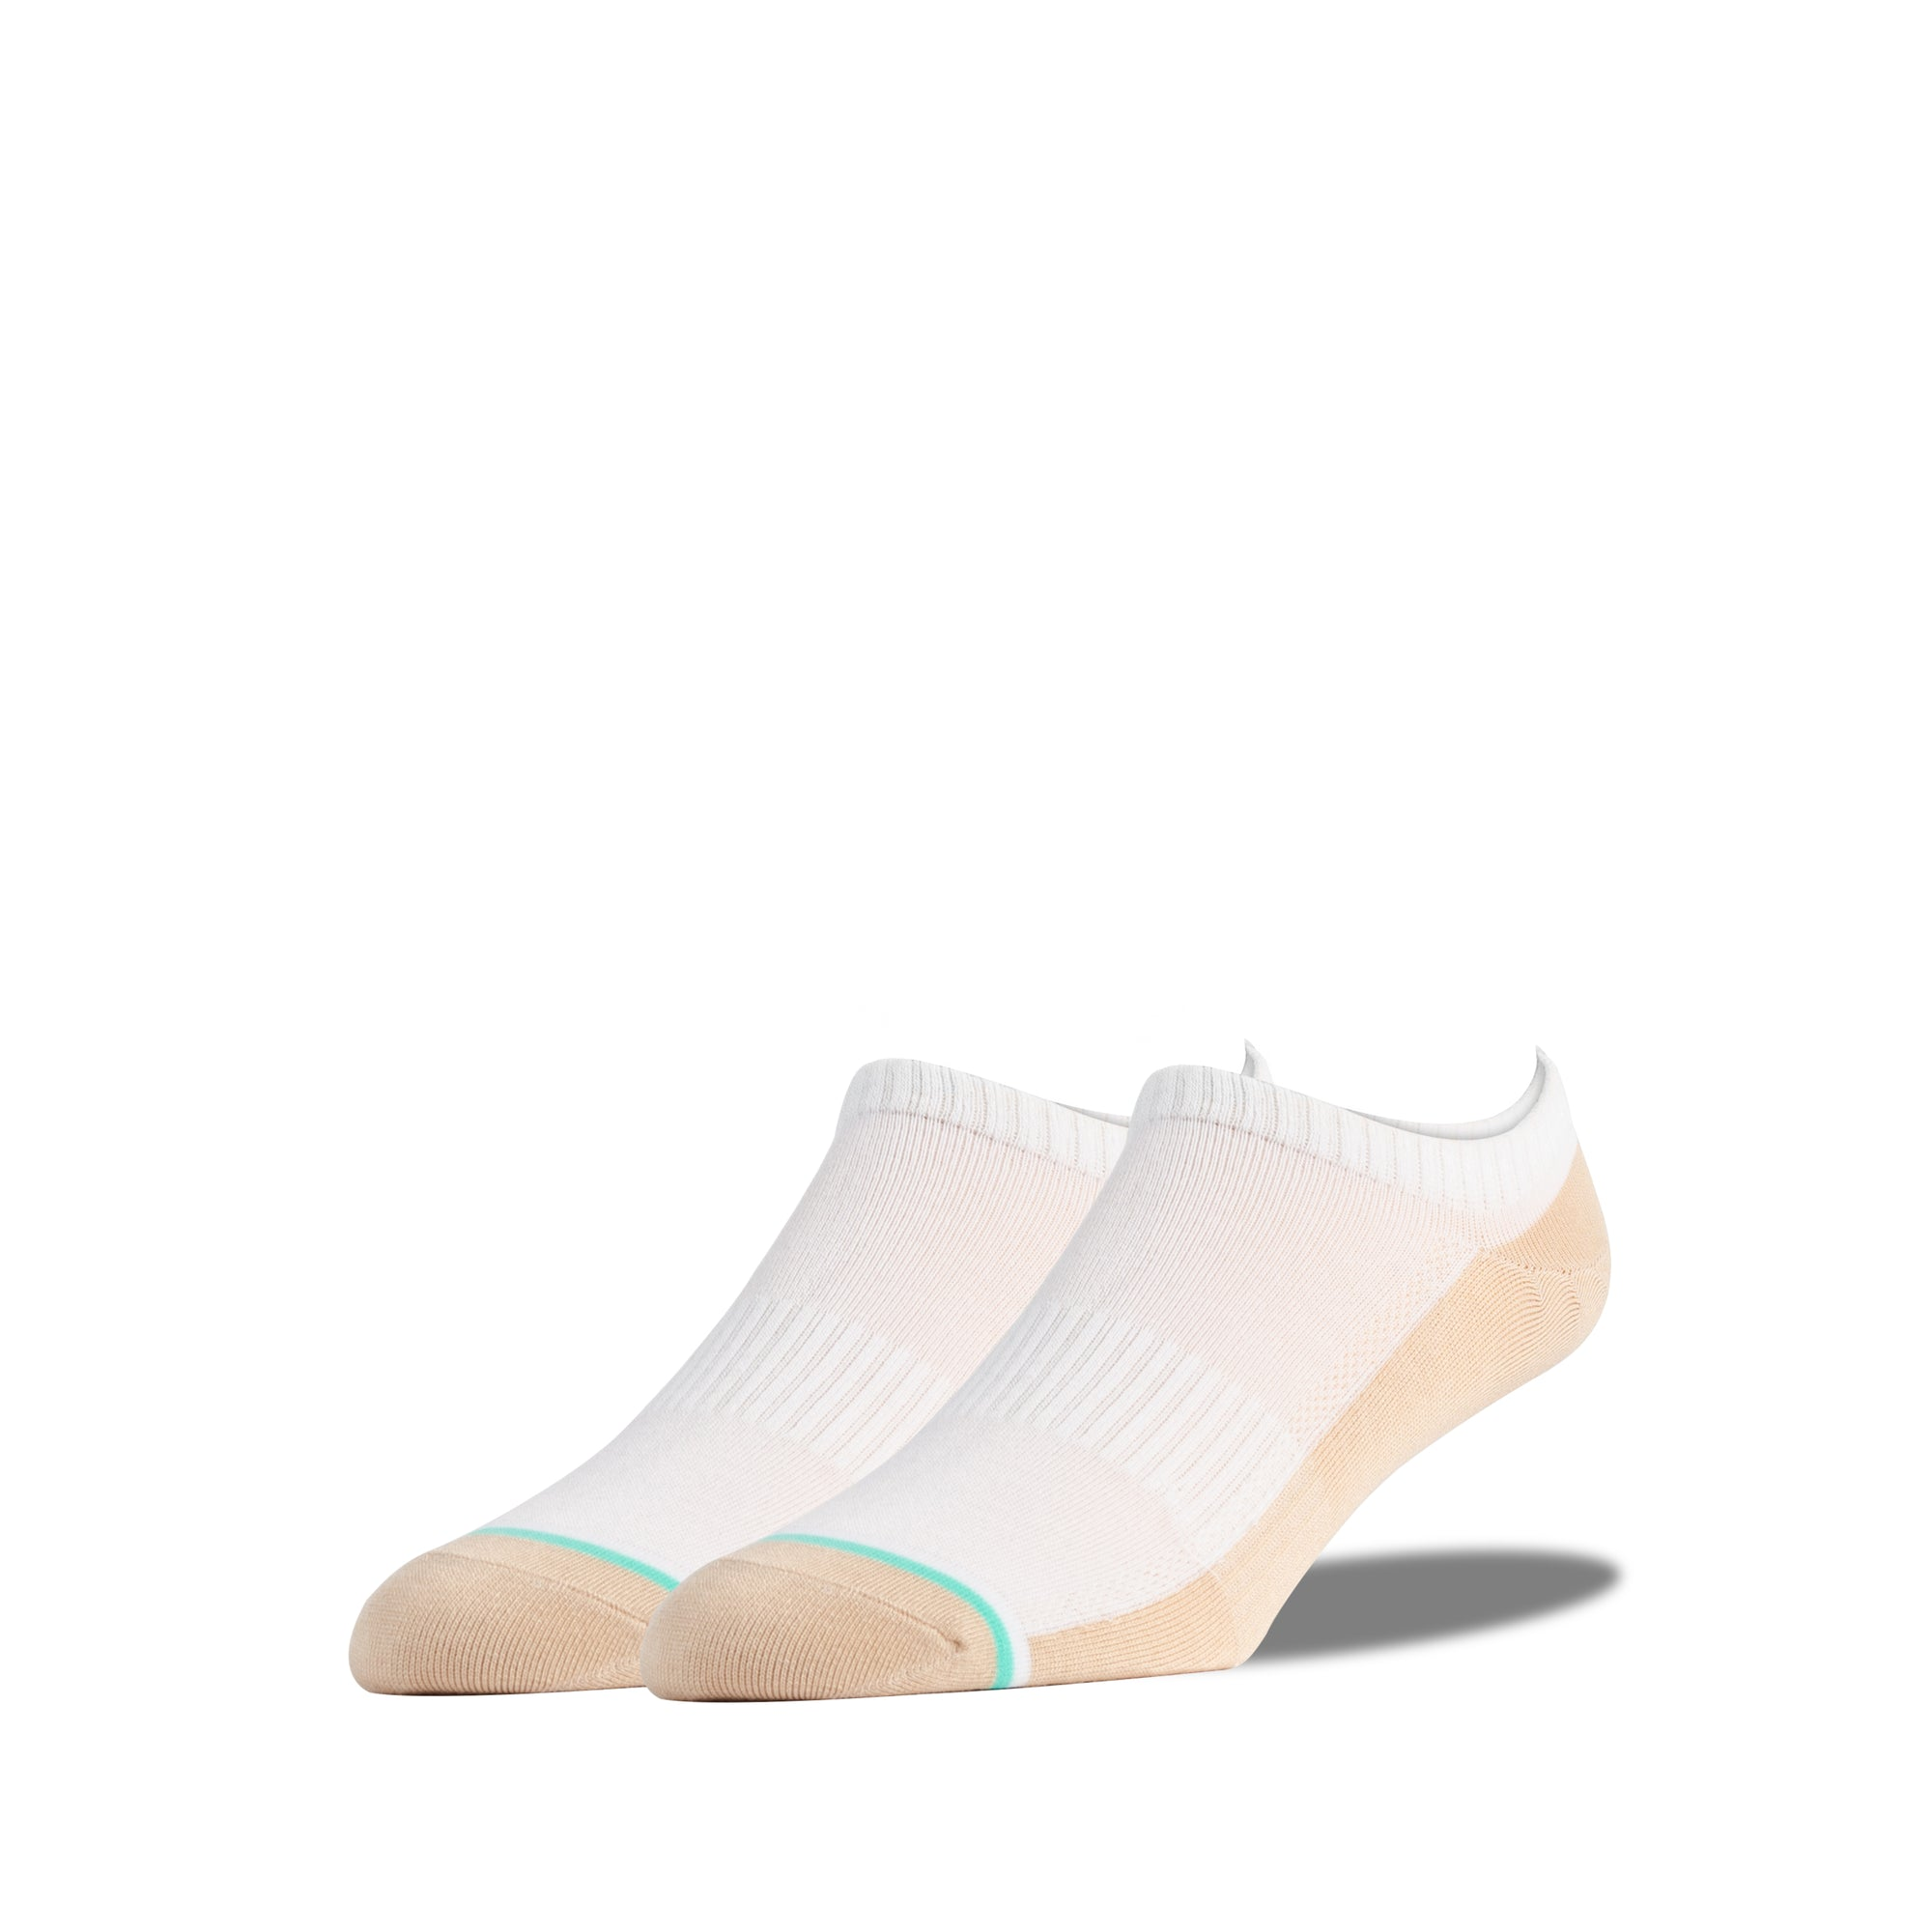 White and Nude Low Cut Socks